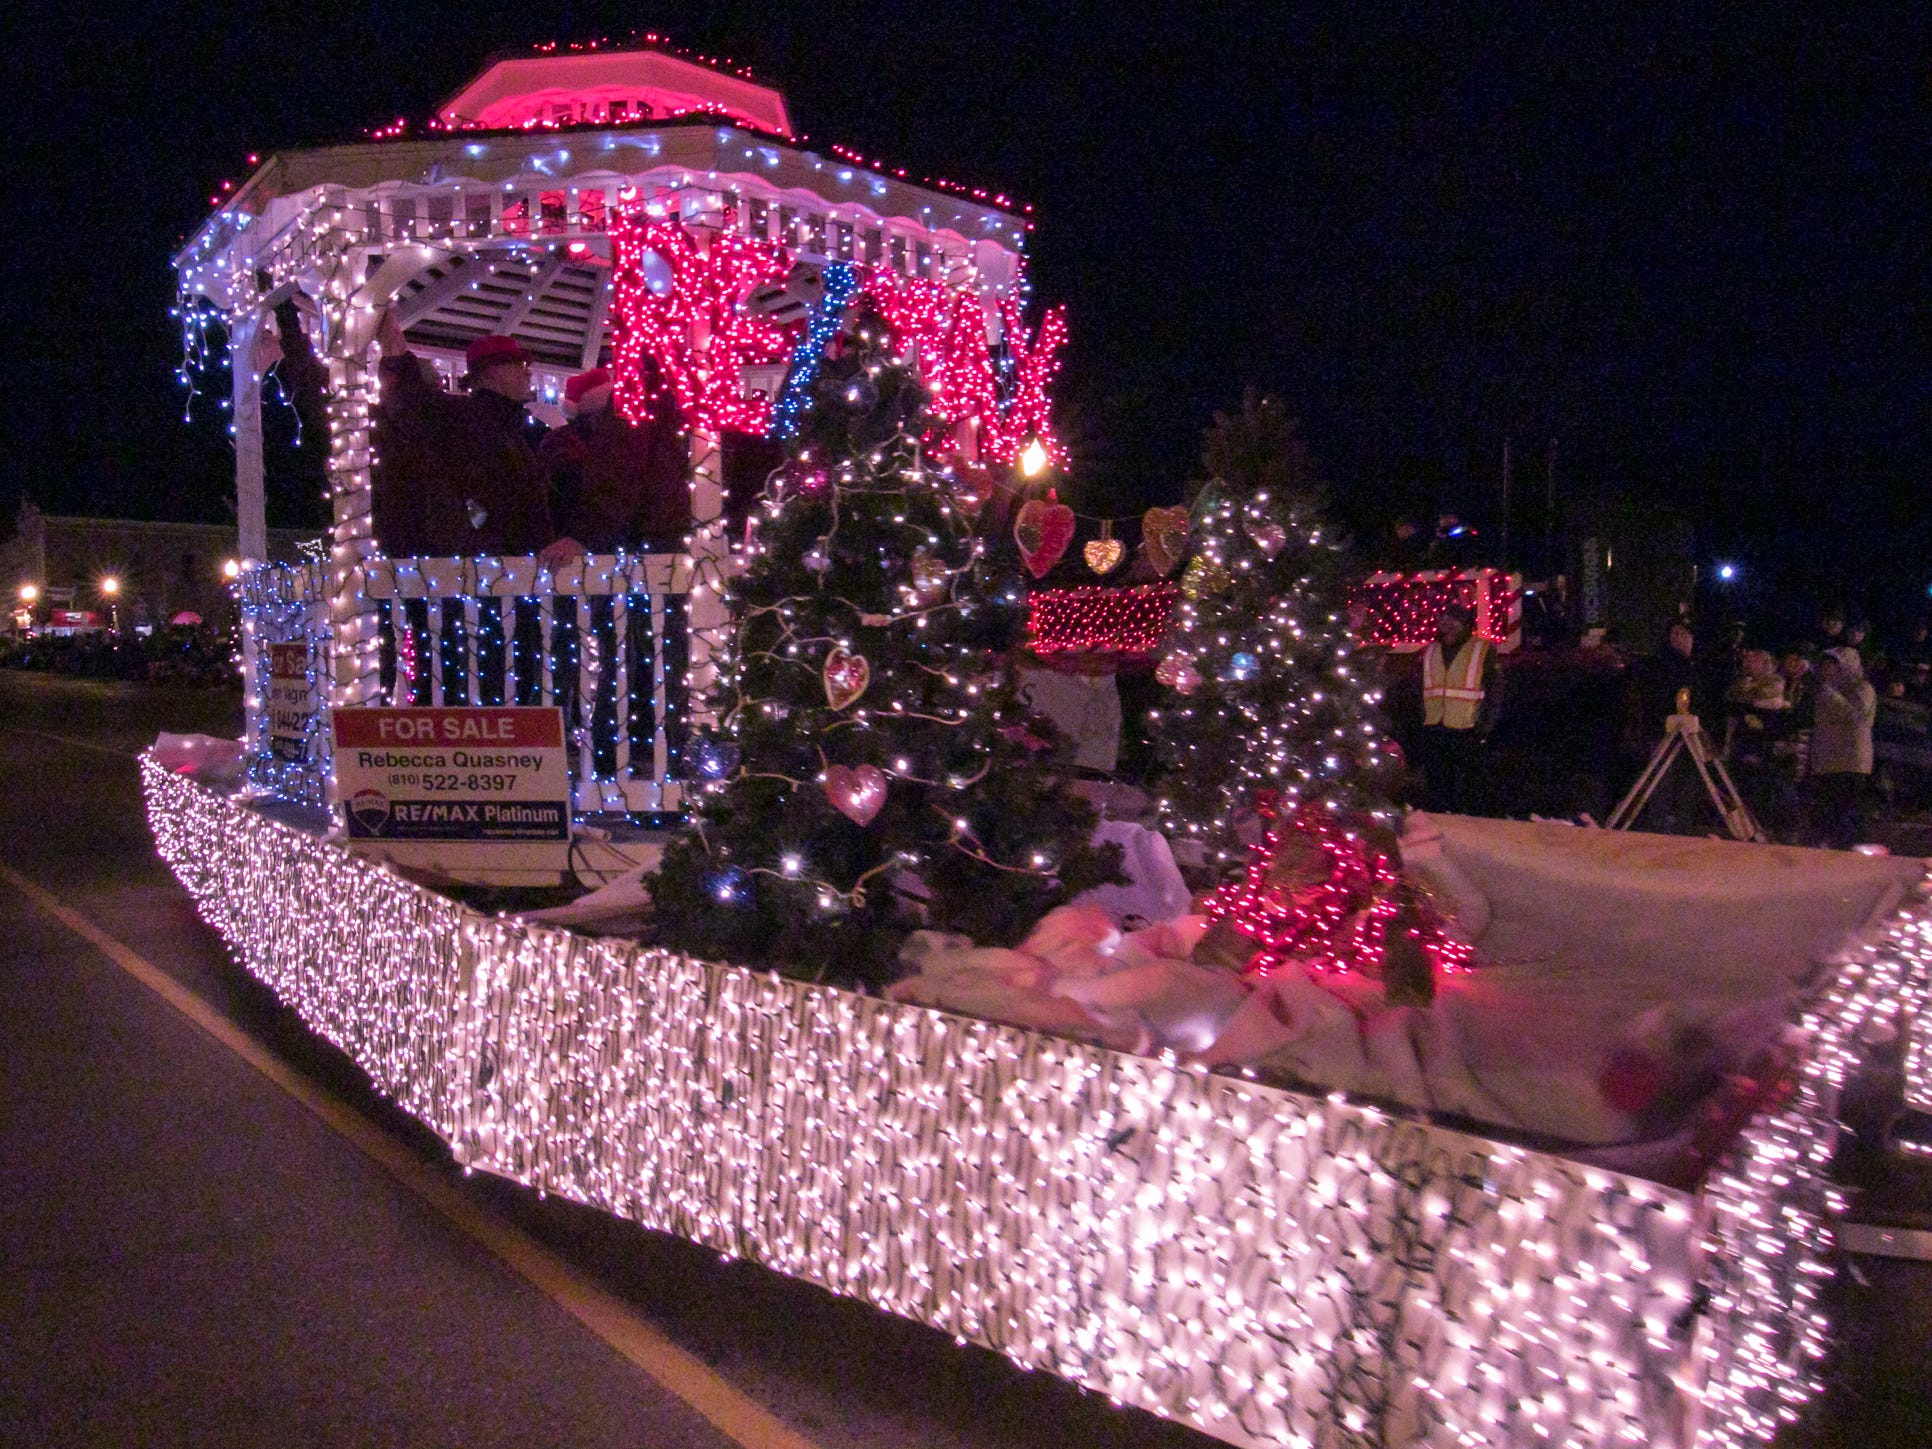 The Re/Max Platinum float makes its annual appearance in the Fantasy of Lights parade Friday, Nov. 23, 2018.